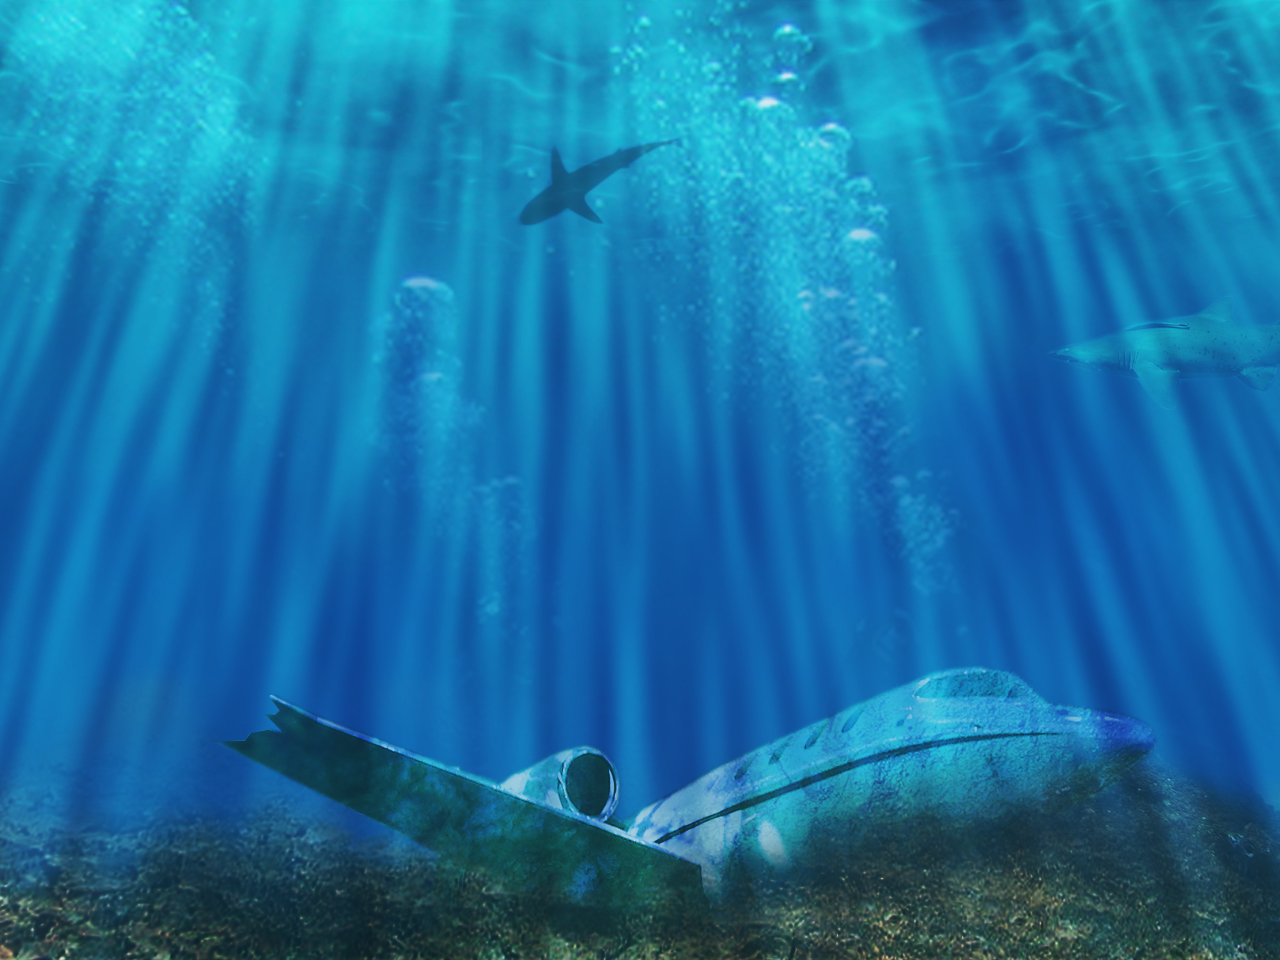 Could mystery of Bermuda Triangle be solved?